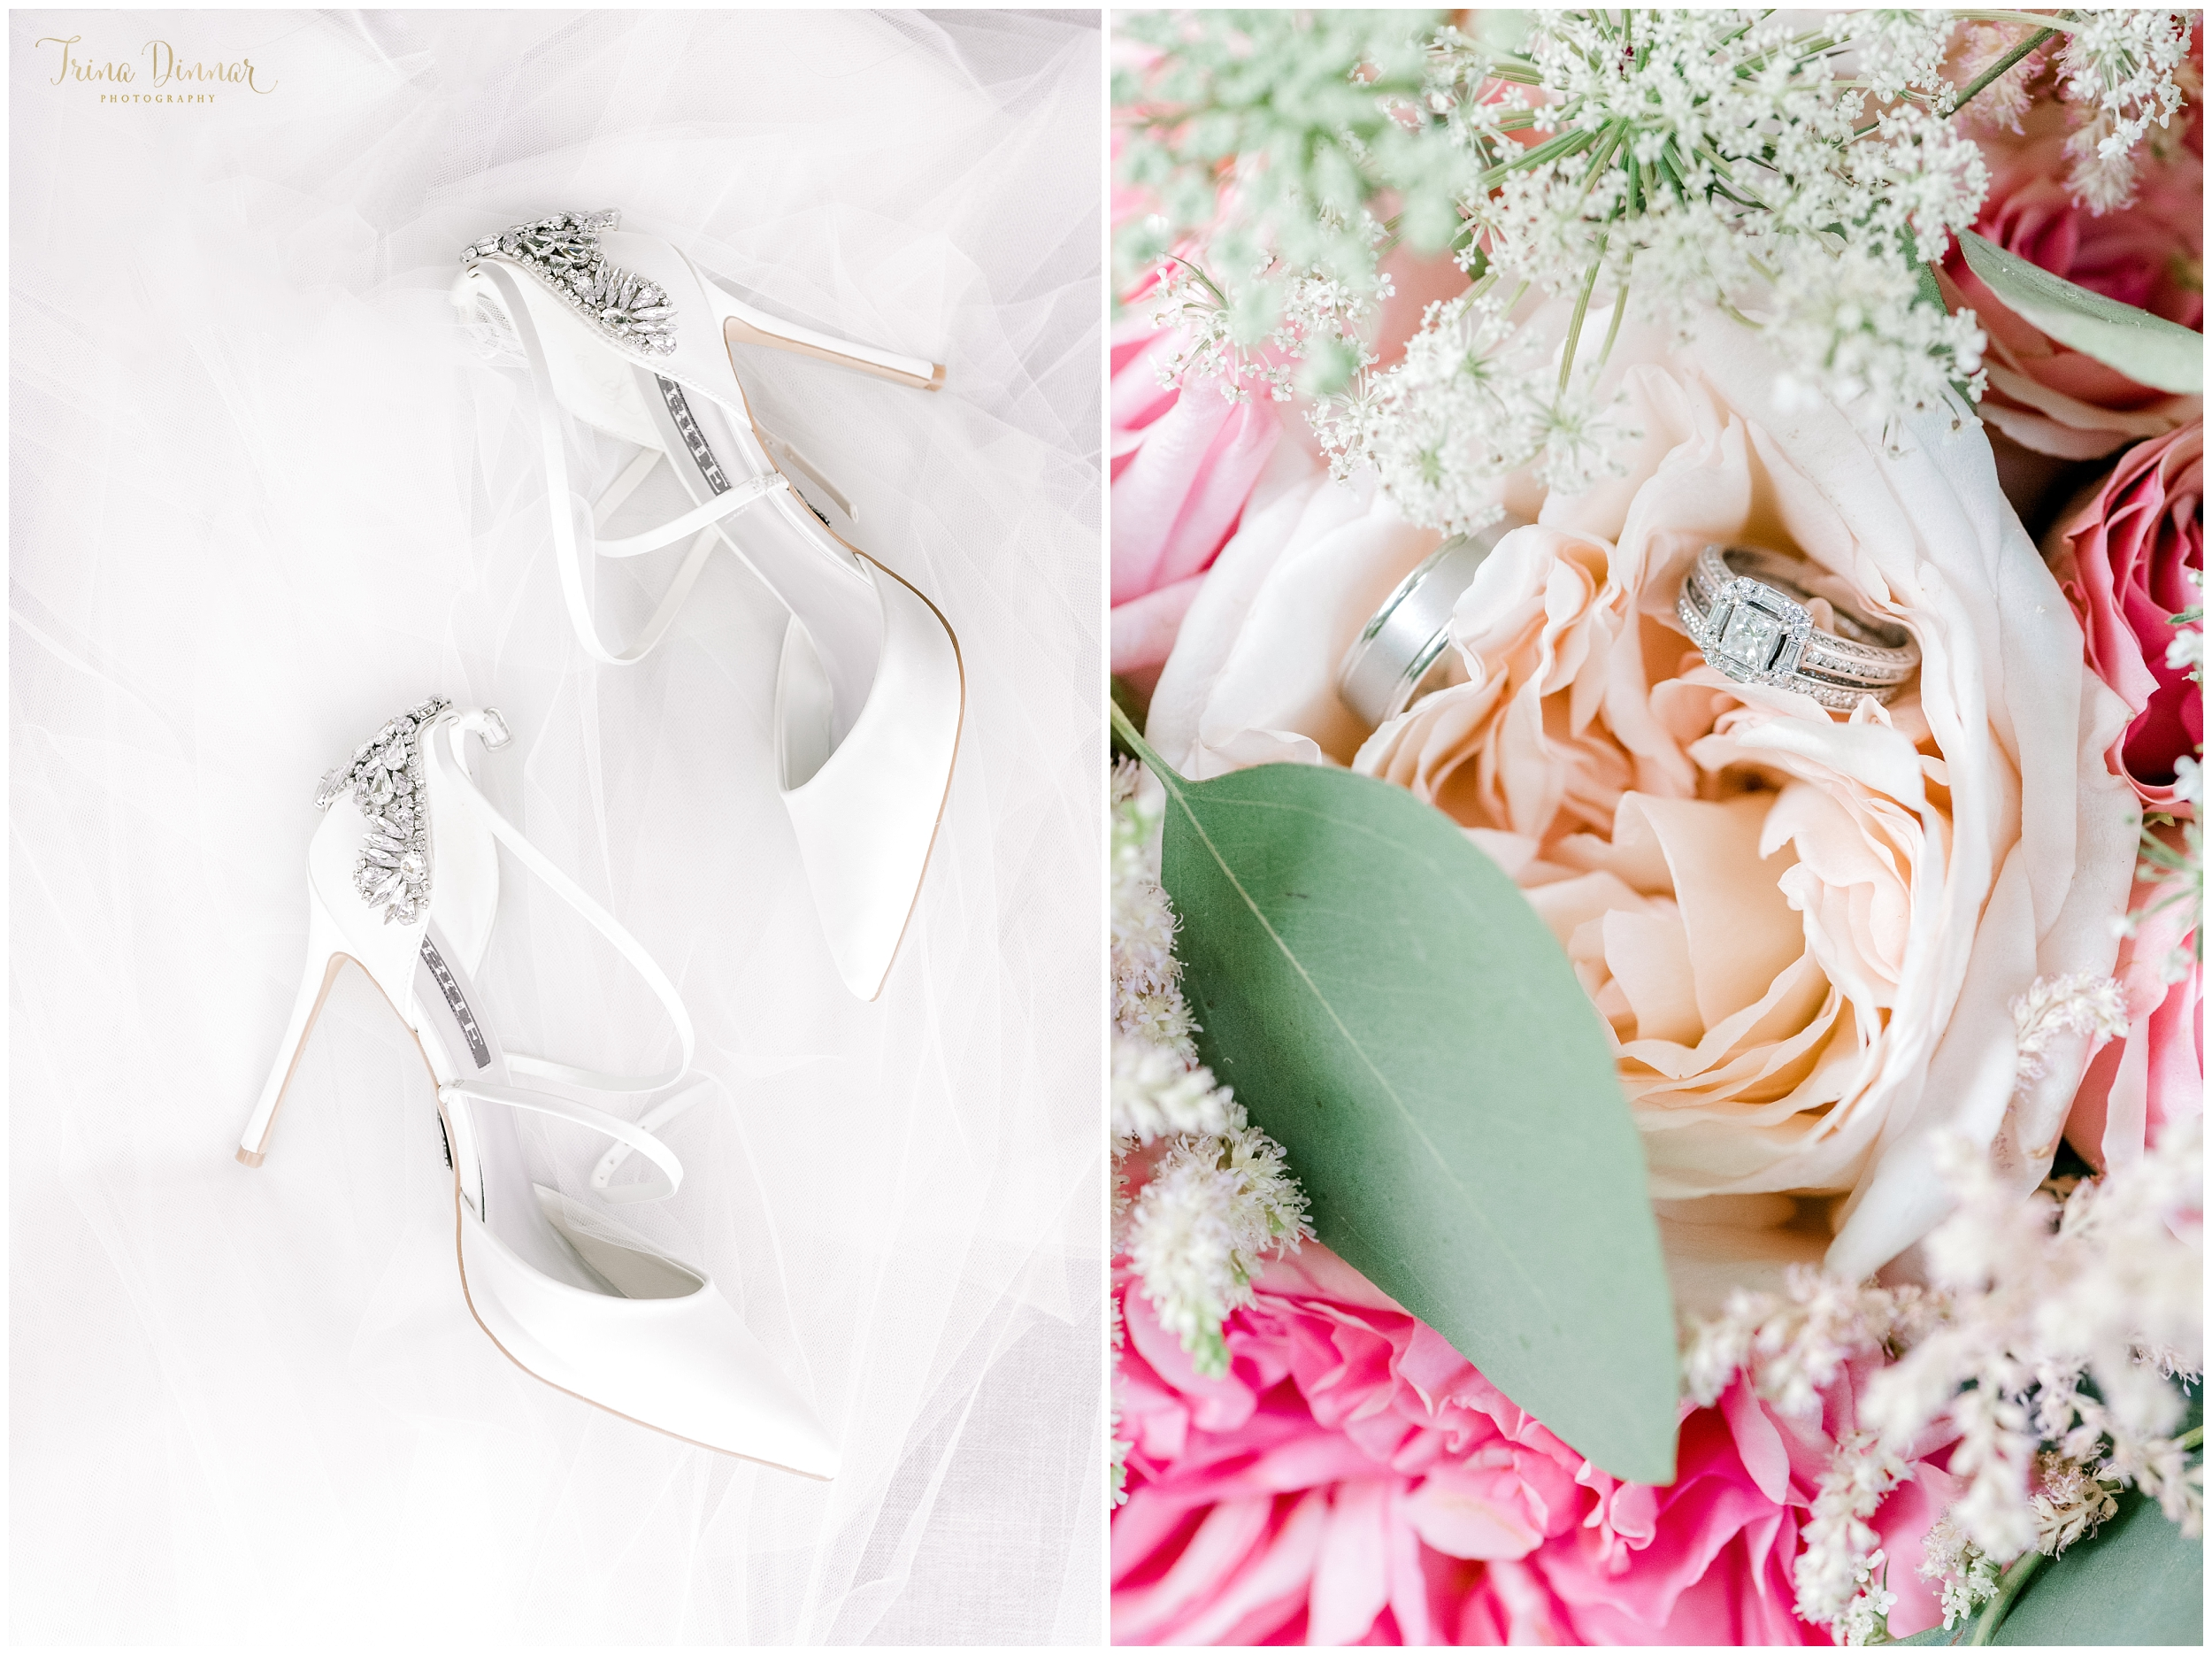 Wedding Photography Details in Maine including shoes, veil, flowers and rings.